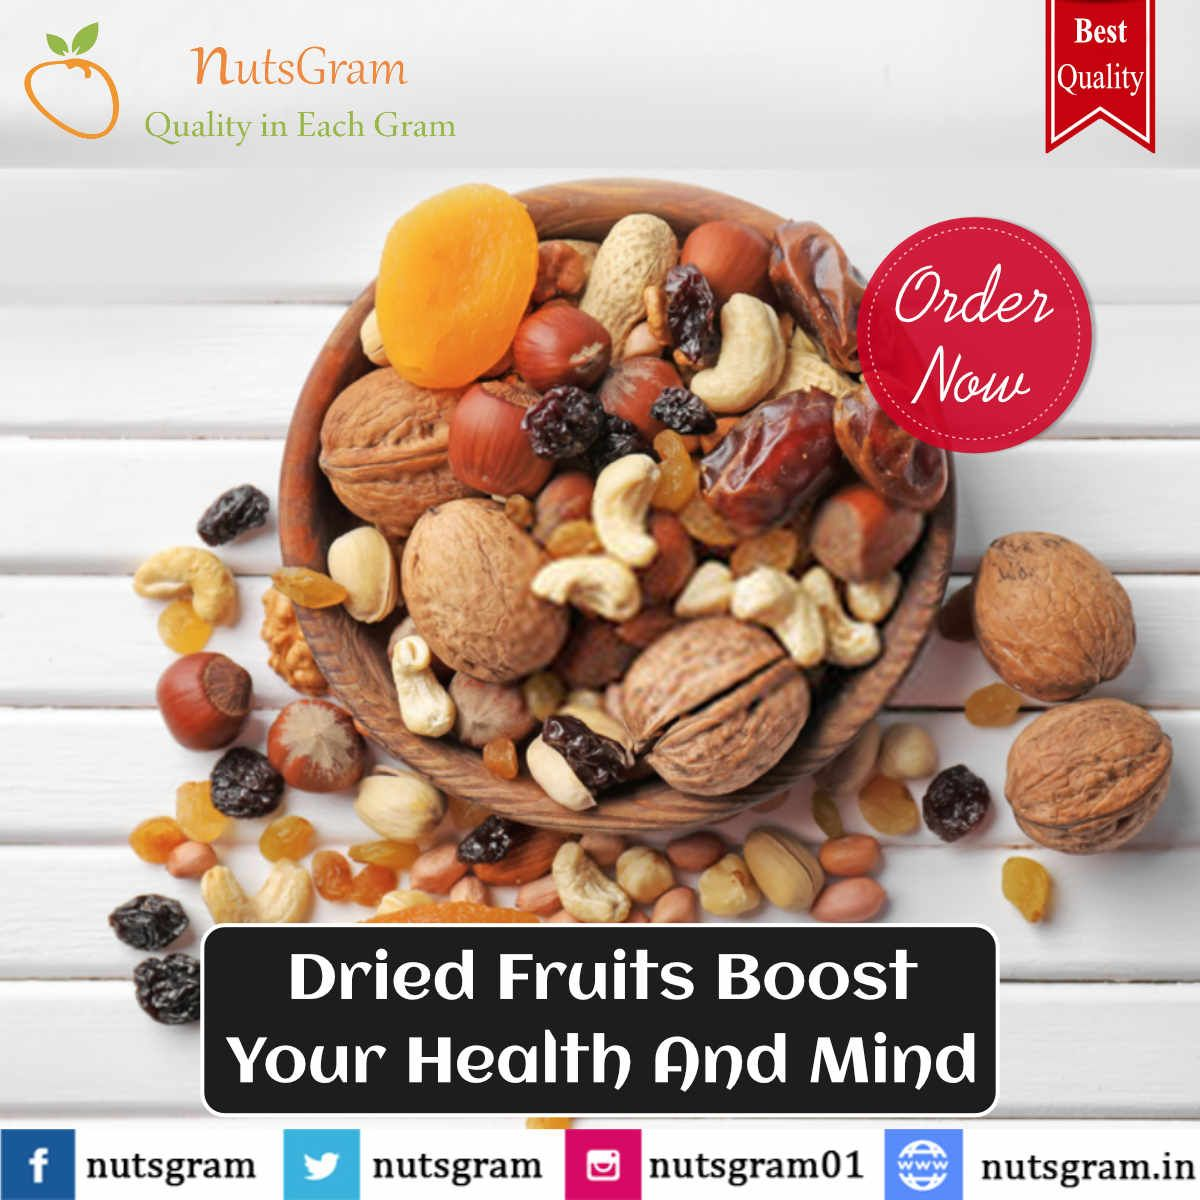 Buy best quality from the most trustable #store at reasonable price in #Delhi India. Order Now at 9278271010 !! #Nutsgram #Dryfruits #HealthyFood #PremiumQuality #Cashews #Almonds #Raisins #Pistachios #Apricots #DriedDates #Cashondelivery